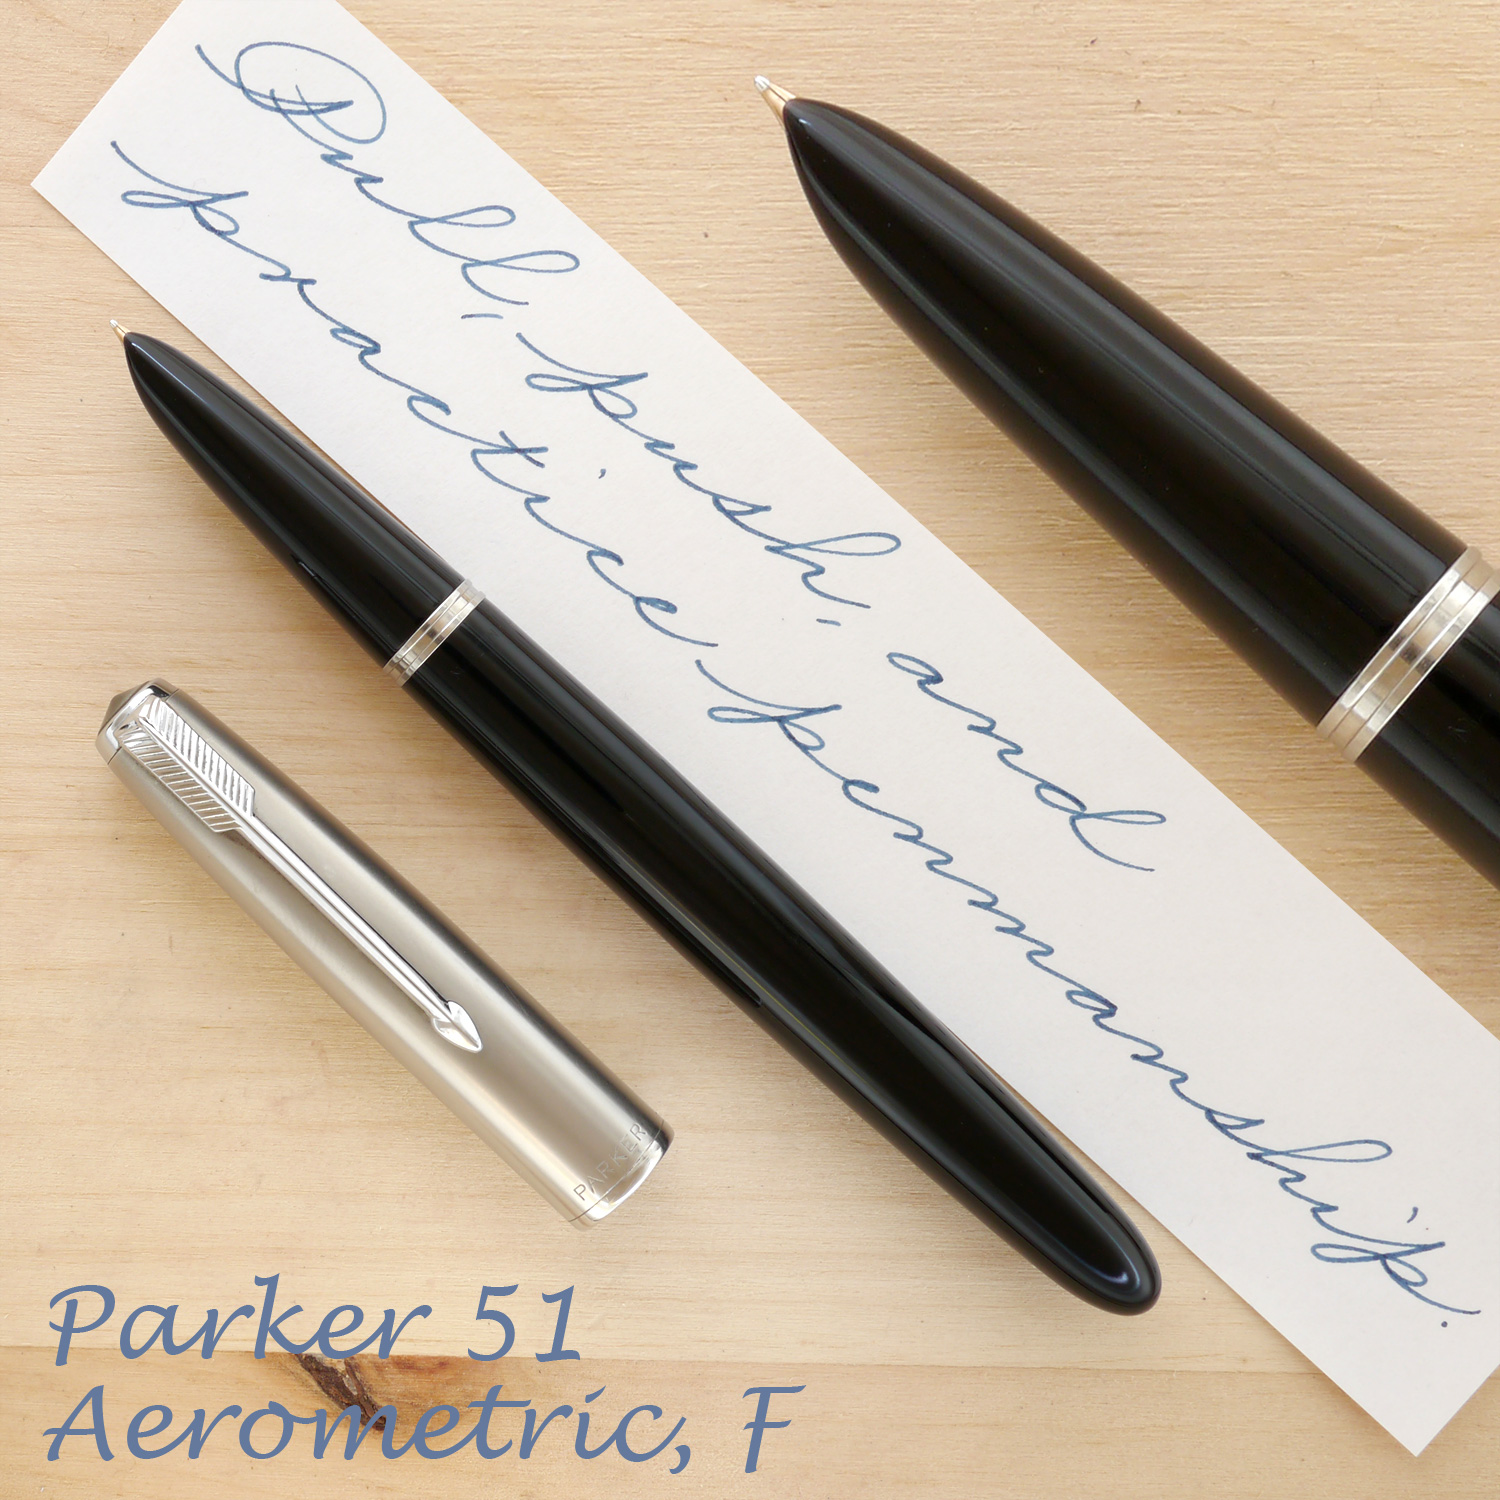 Parker 51 Aerometric, Black, F, uncapped